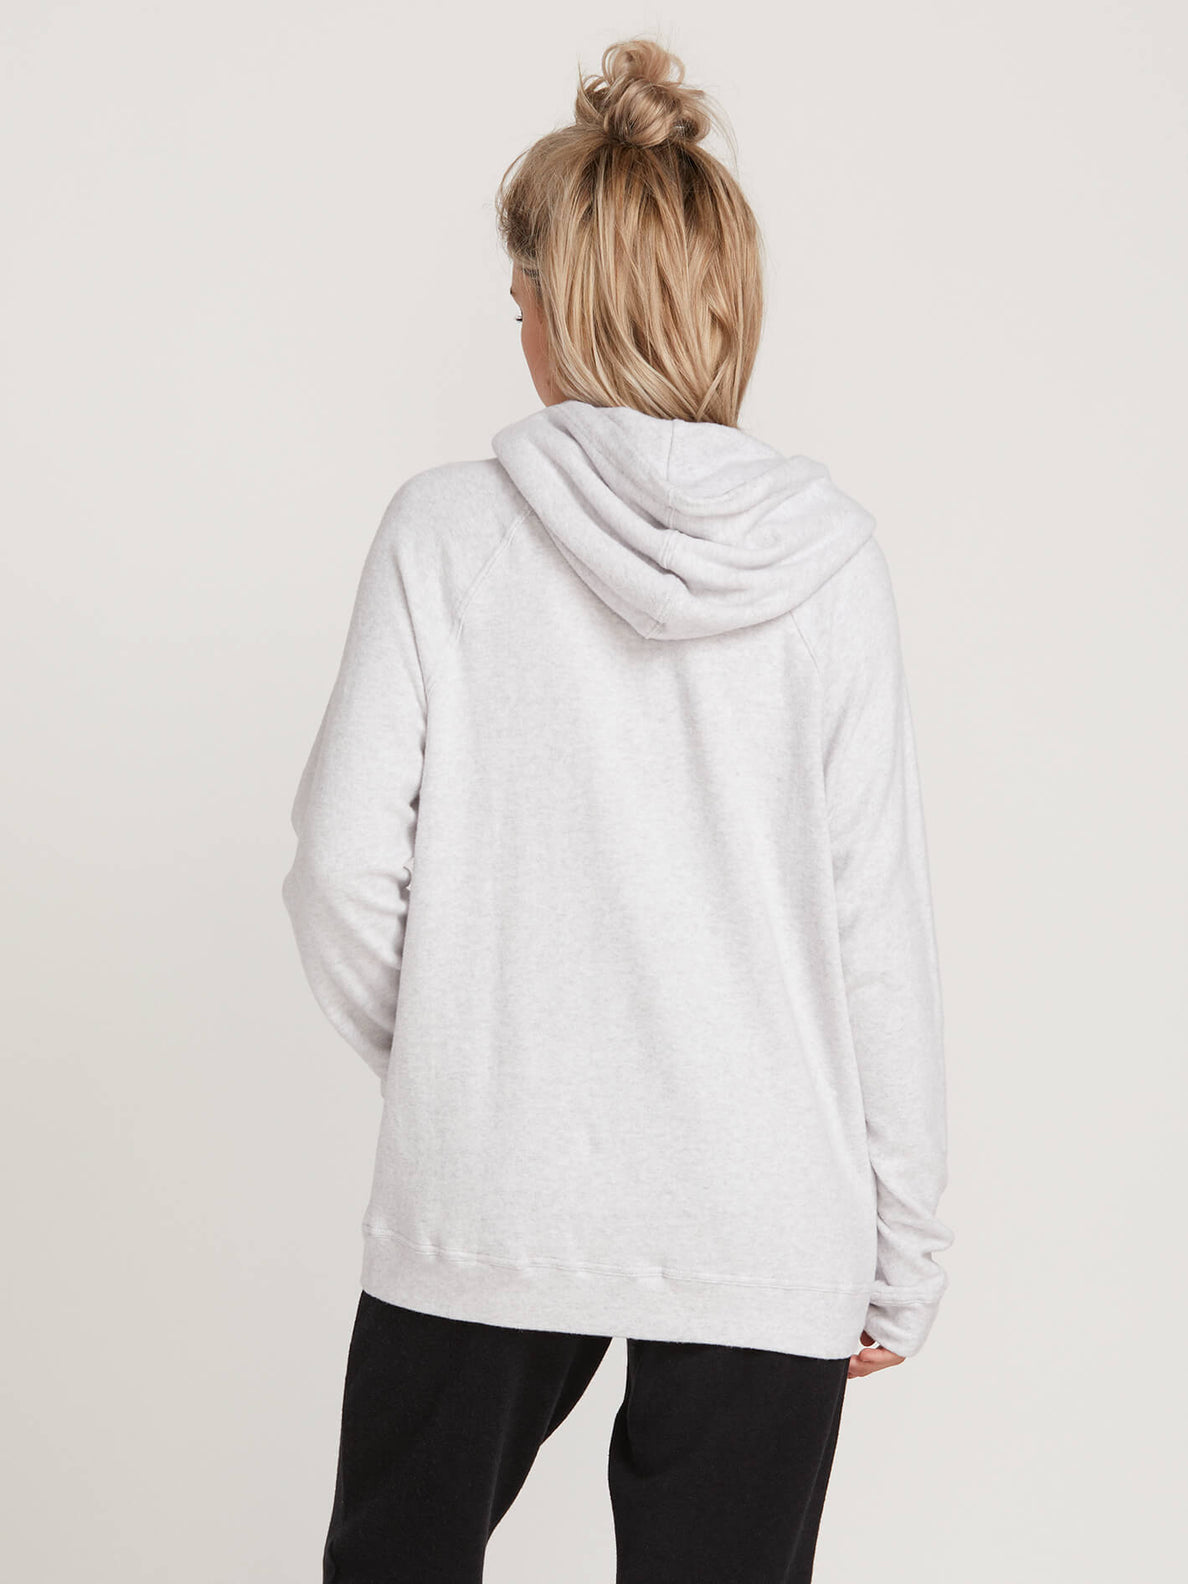 Lived In Lounge Pullover Hoodie In Light Grey, Back View